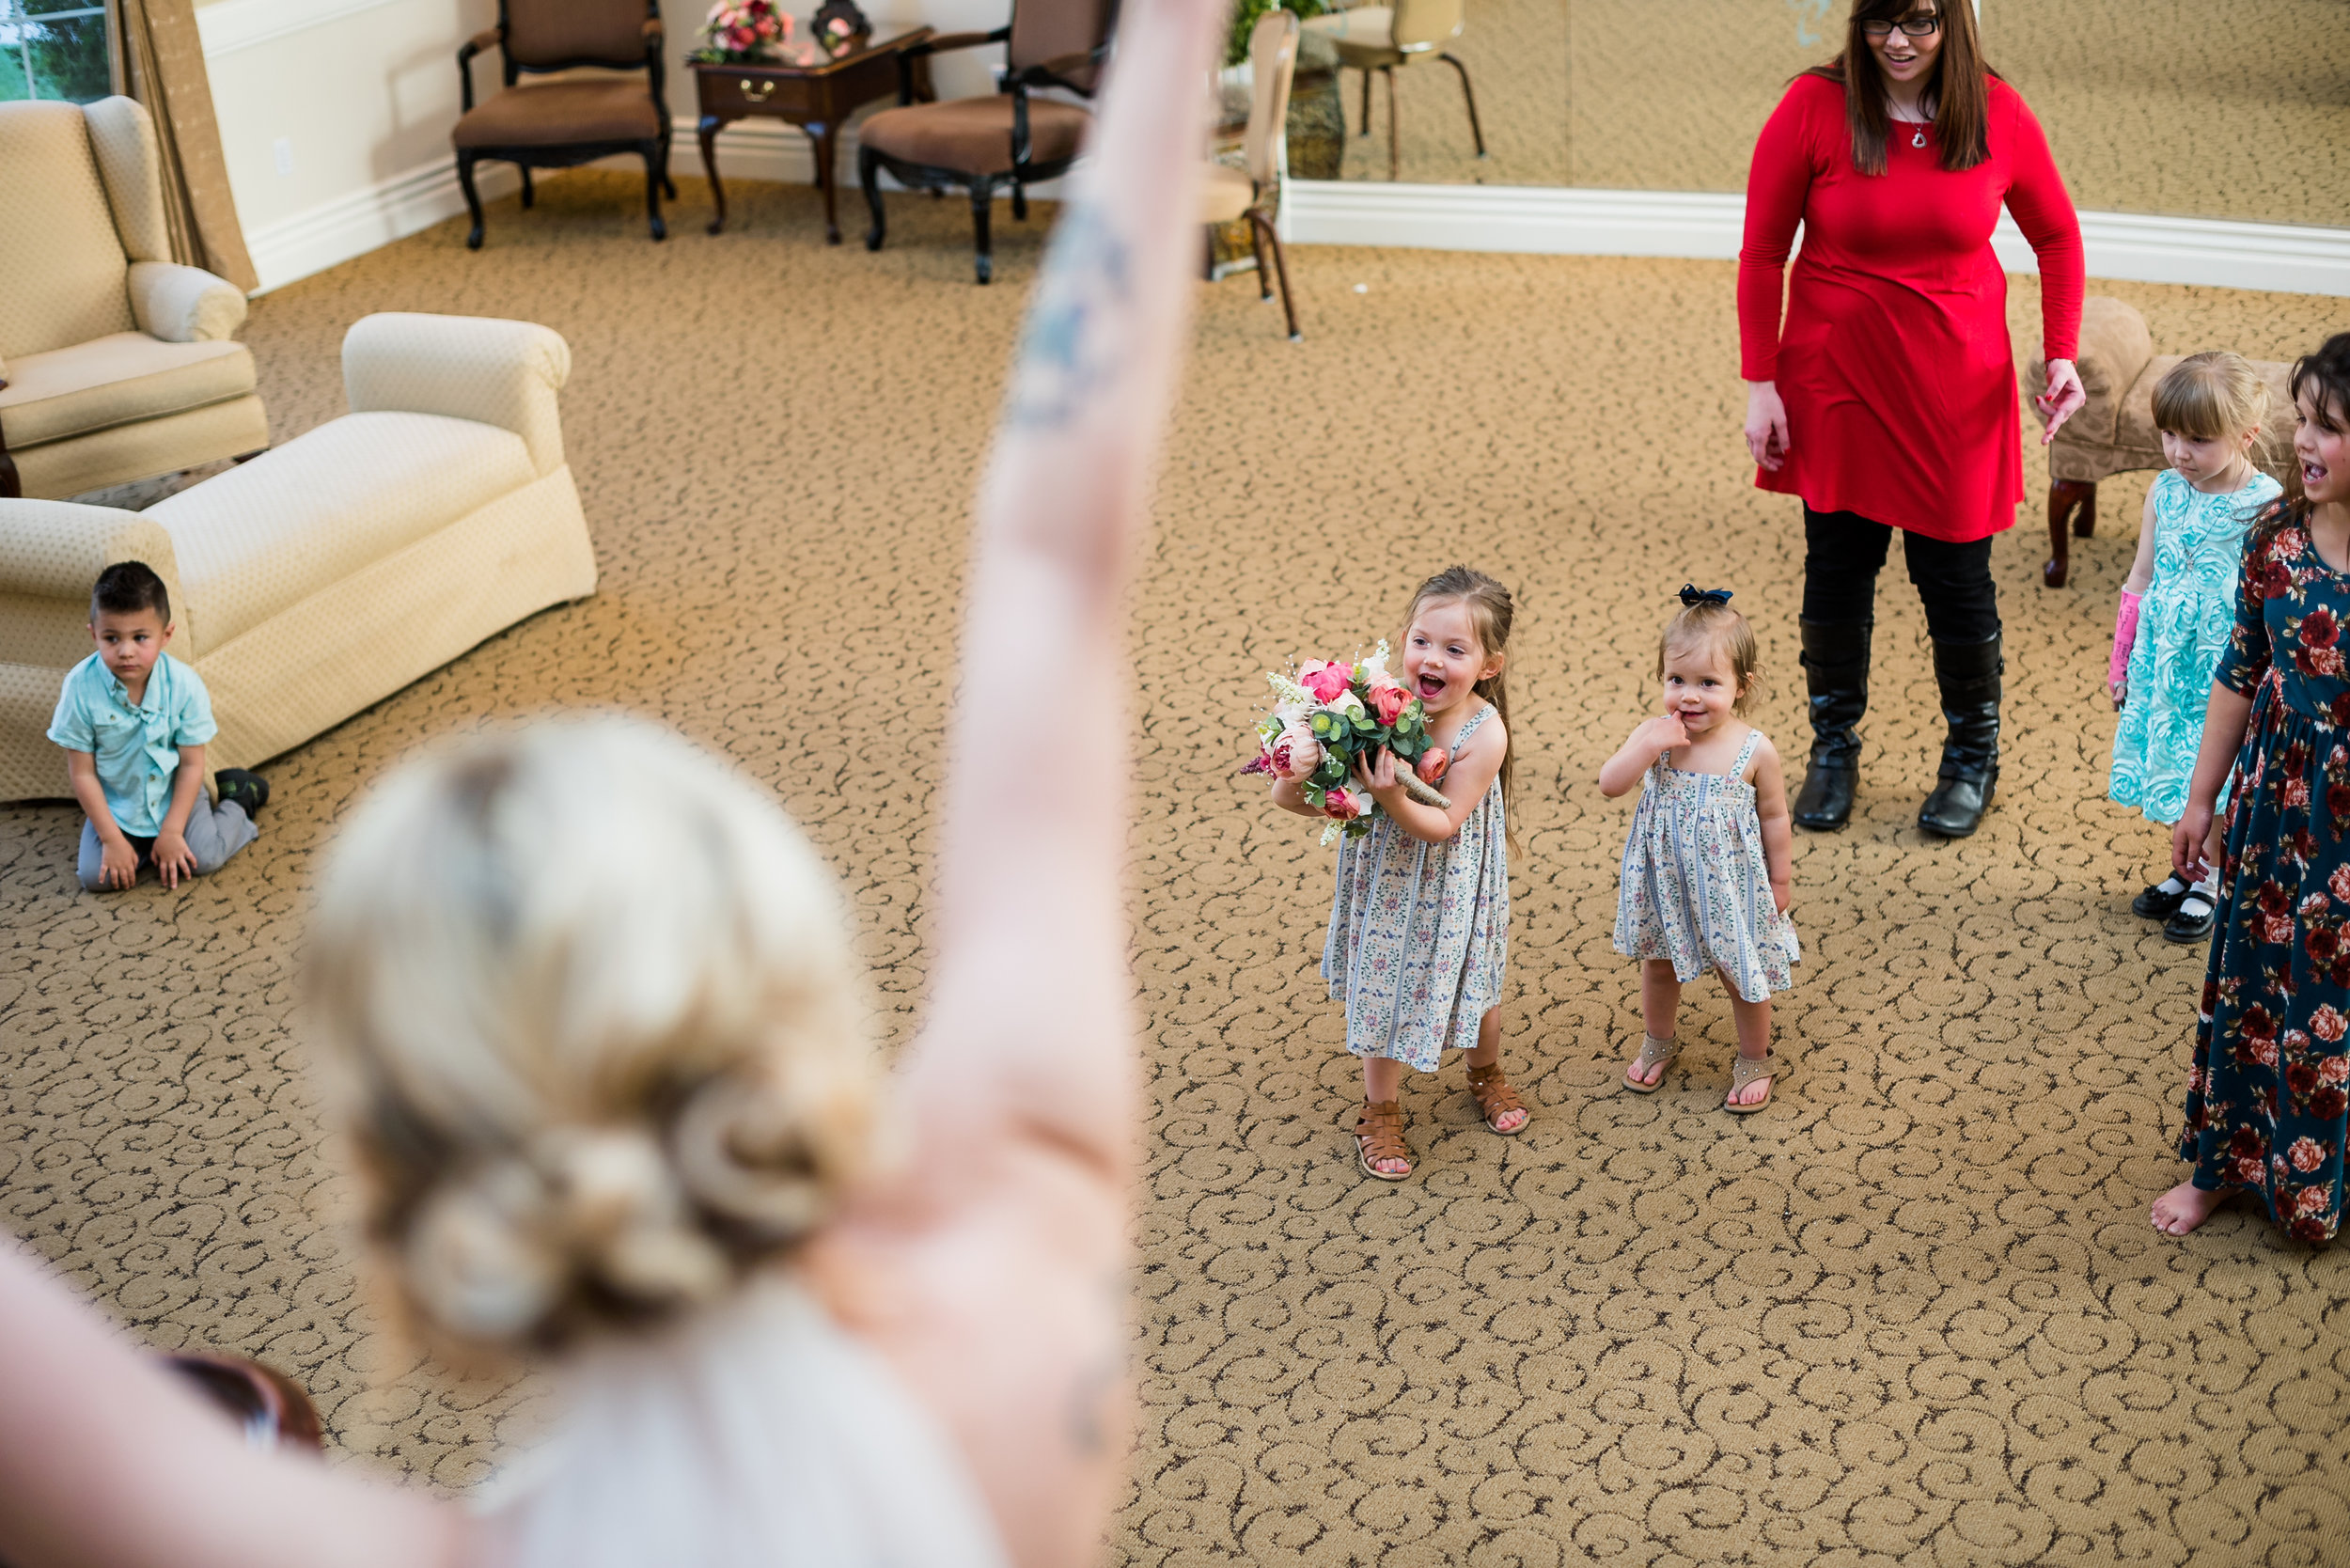 And look how happy this little doll is that she got to hold the bouquet, too!